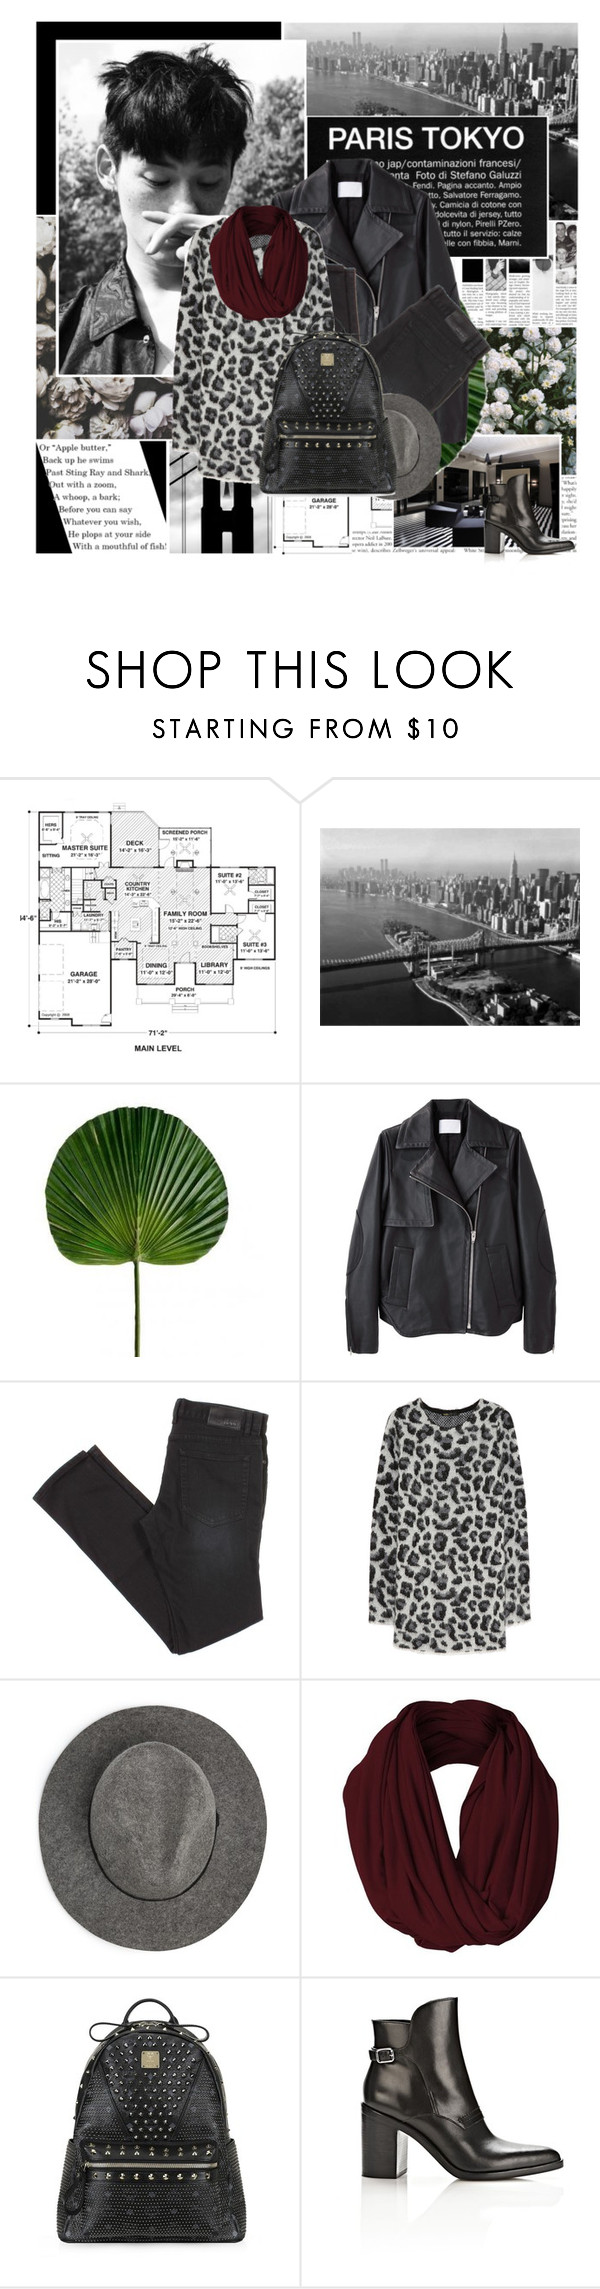 """266: Maybe...Just Maybe?"" by unicorn-plushie ❤ liked on Polyvore featuring Alexander Wang, Maje, MANGO, MCM, women's clothing, women's fashion, women, female, woman and misses"